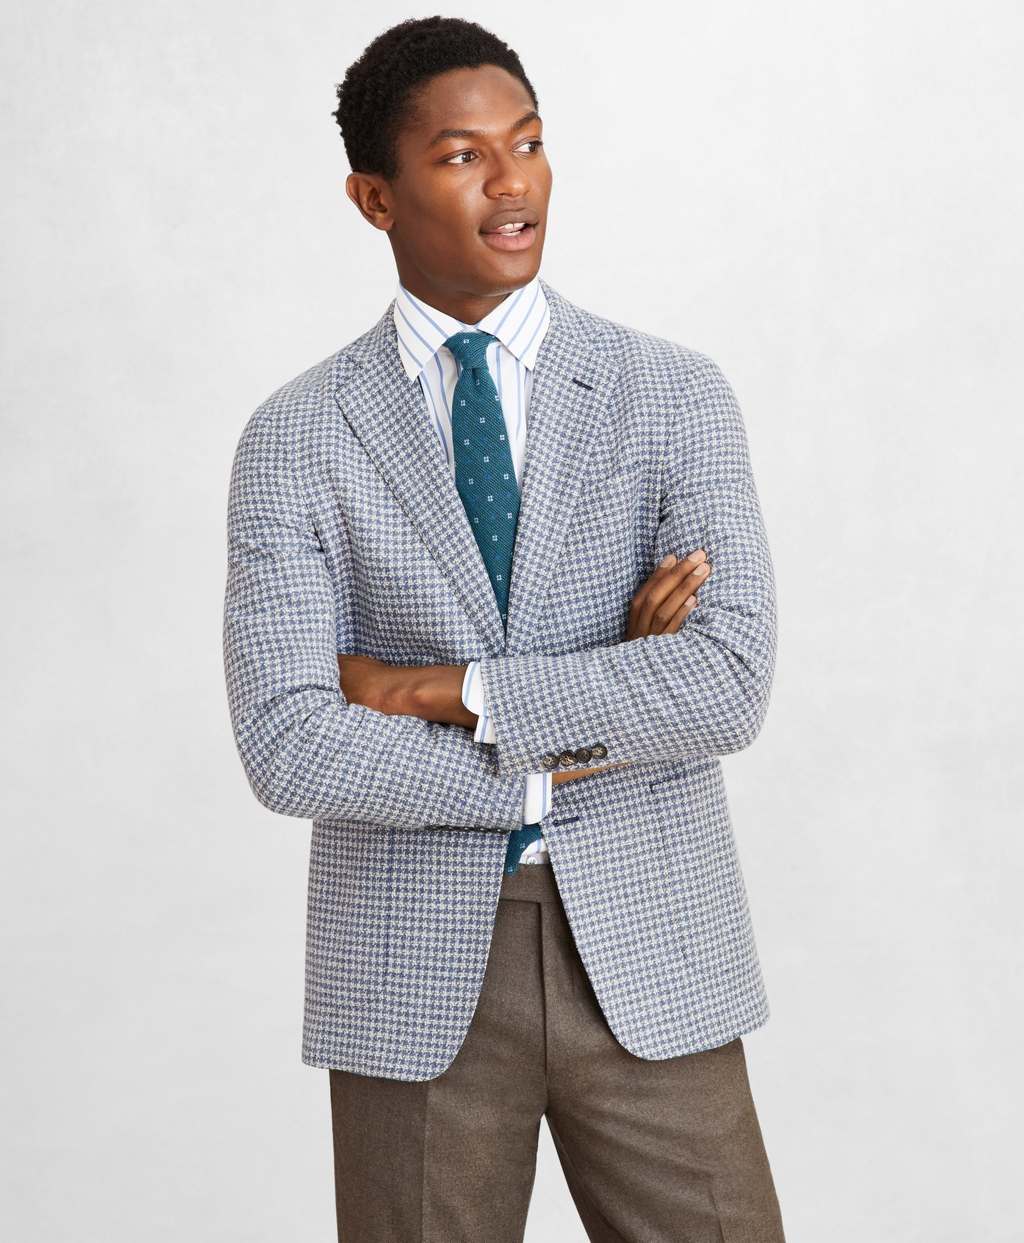 Men's Vintage Style Suits, Classic Suits Brooks Brothers Mens Golden Fleece Wool-Blend Houndstooth Blue Sport Coat $1,188.60 AT vintagedancer.com